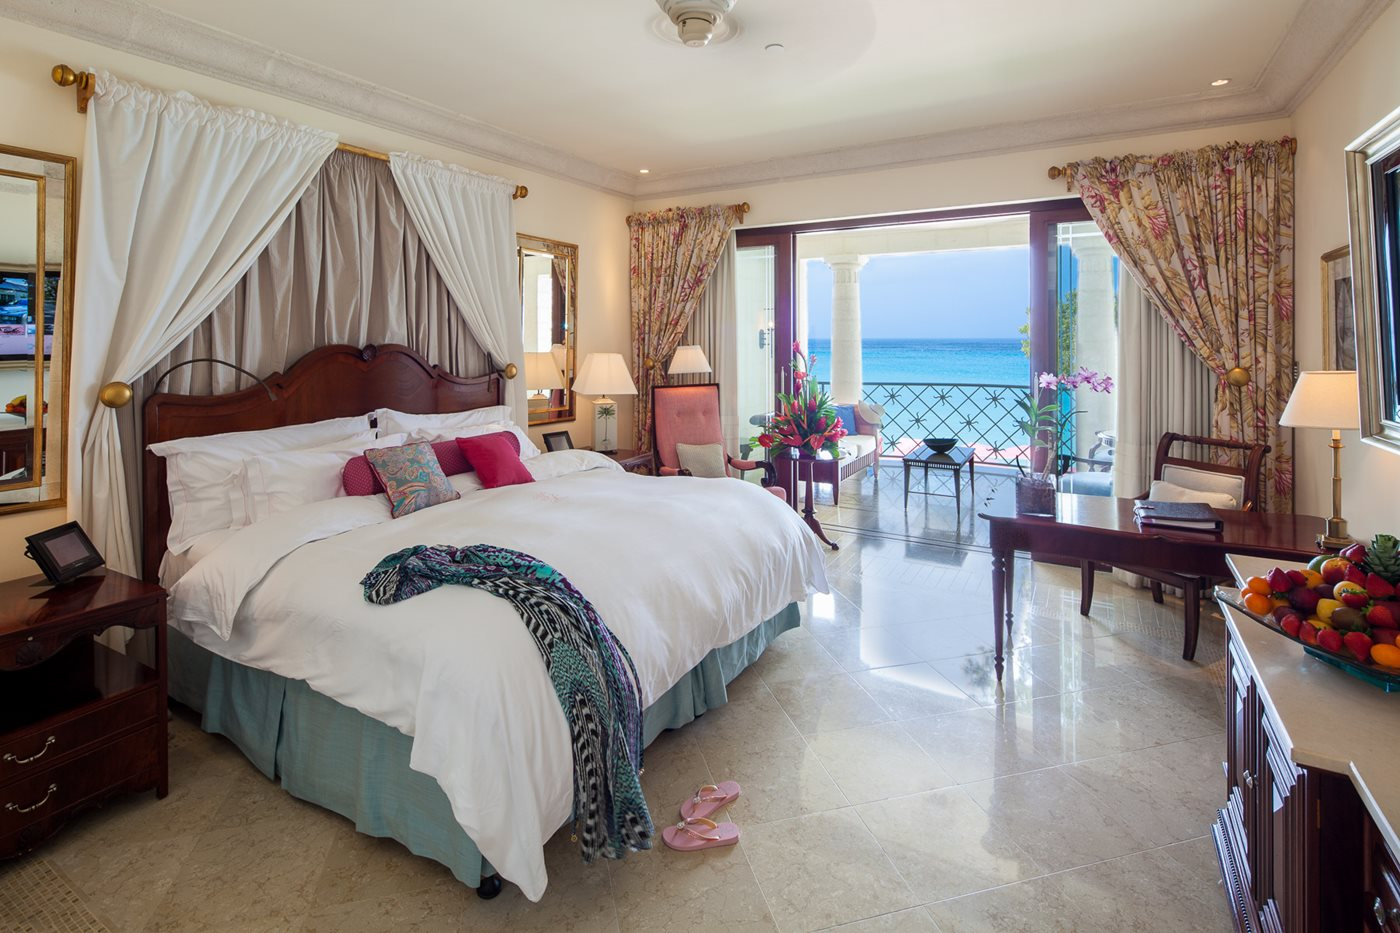 Luxury ocean rooms with a view 5 star resort barbados for Luxury hotel room